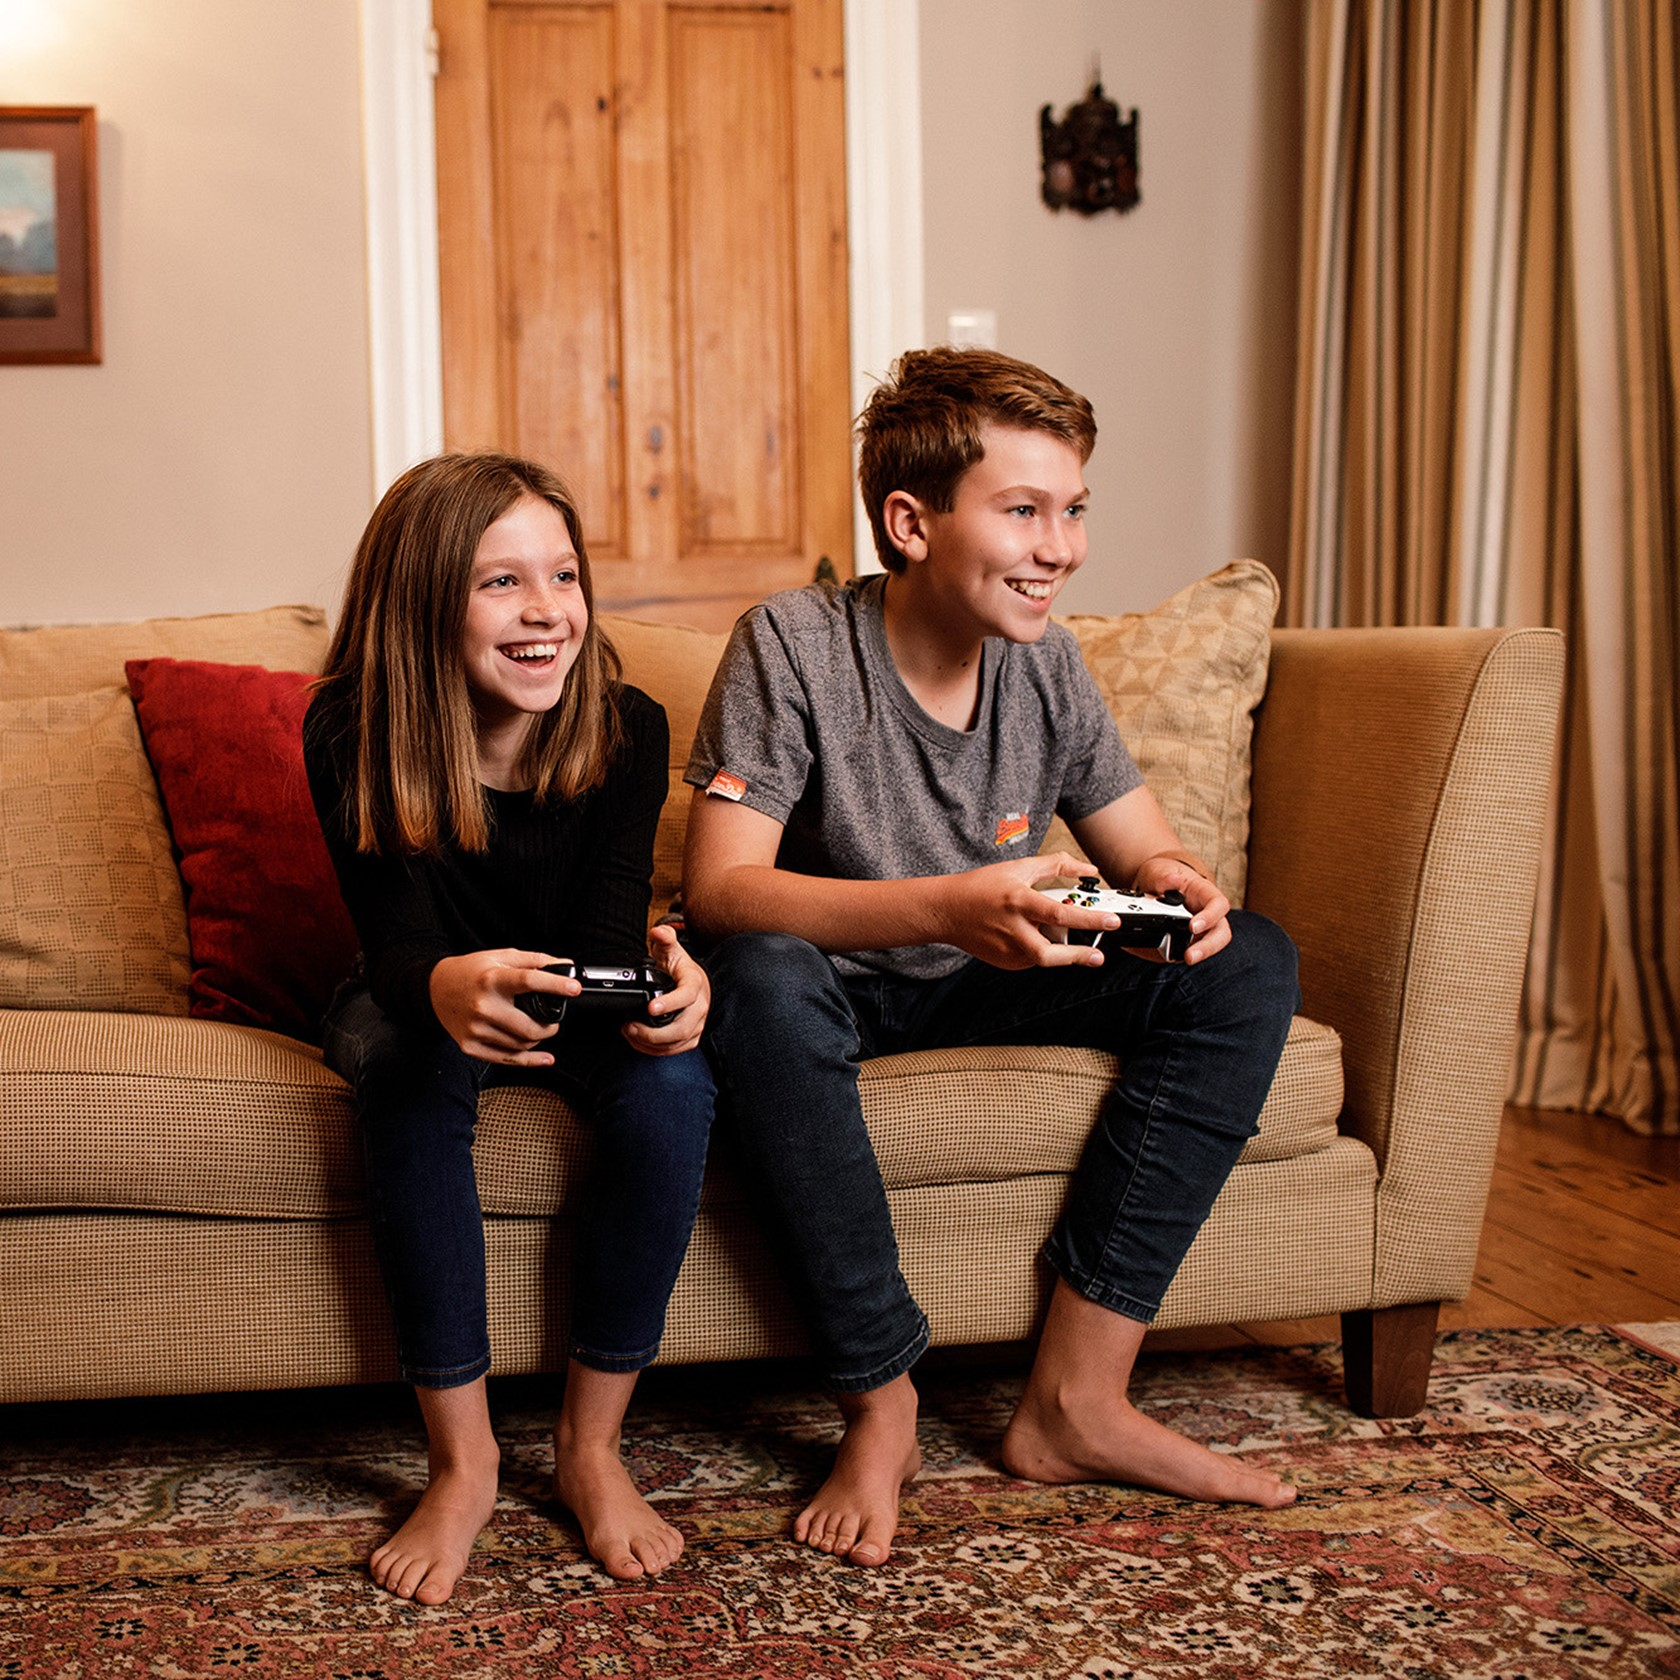 A brother and sister sit on the sofa and play video games.